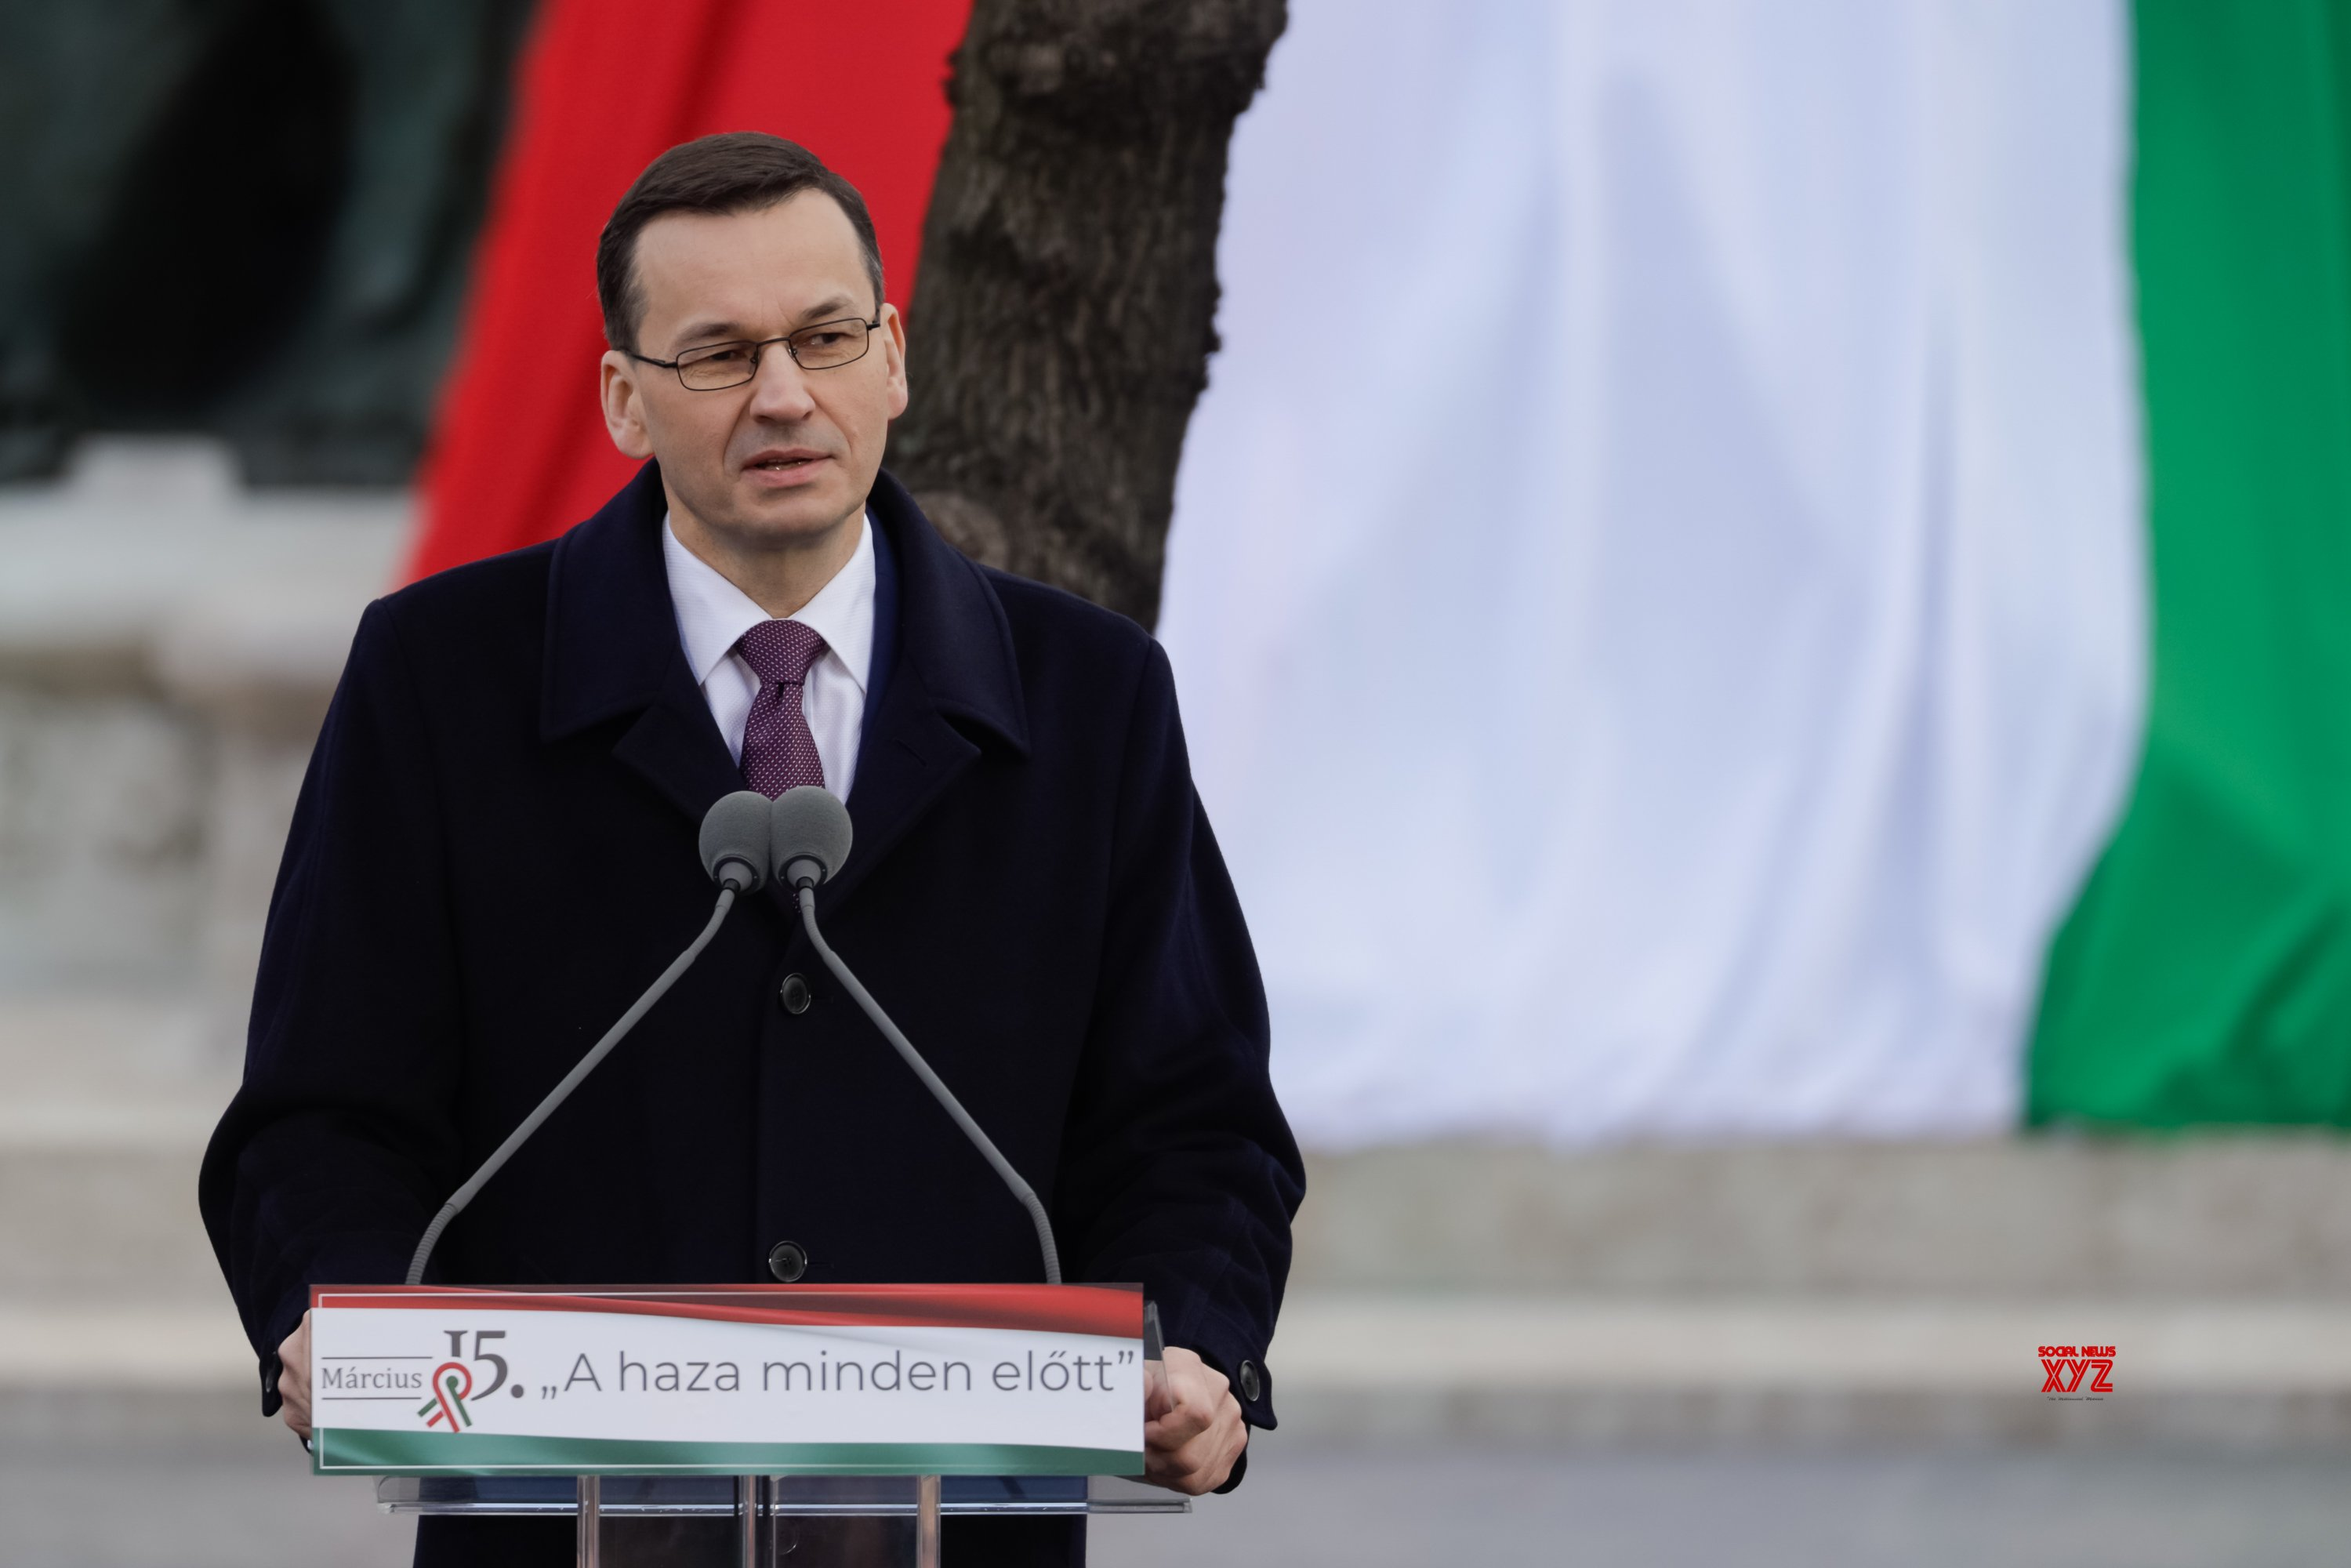 HUNGARY - BUDAPEST - NATIONAL DAY #Gallery